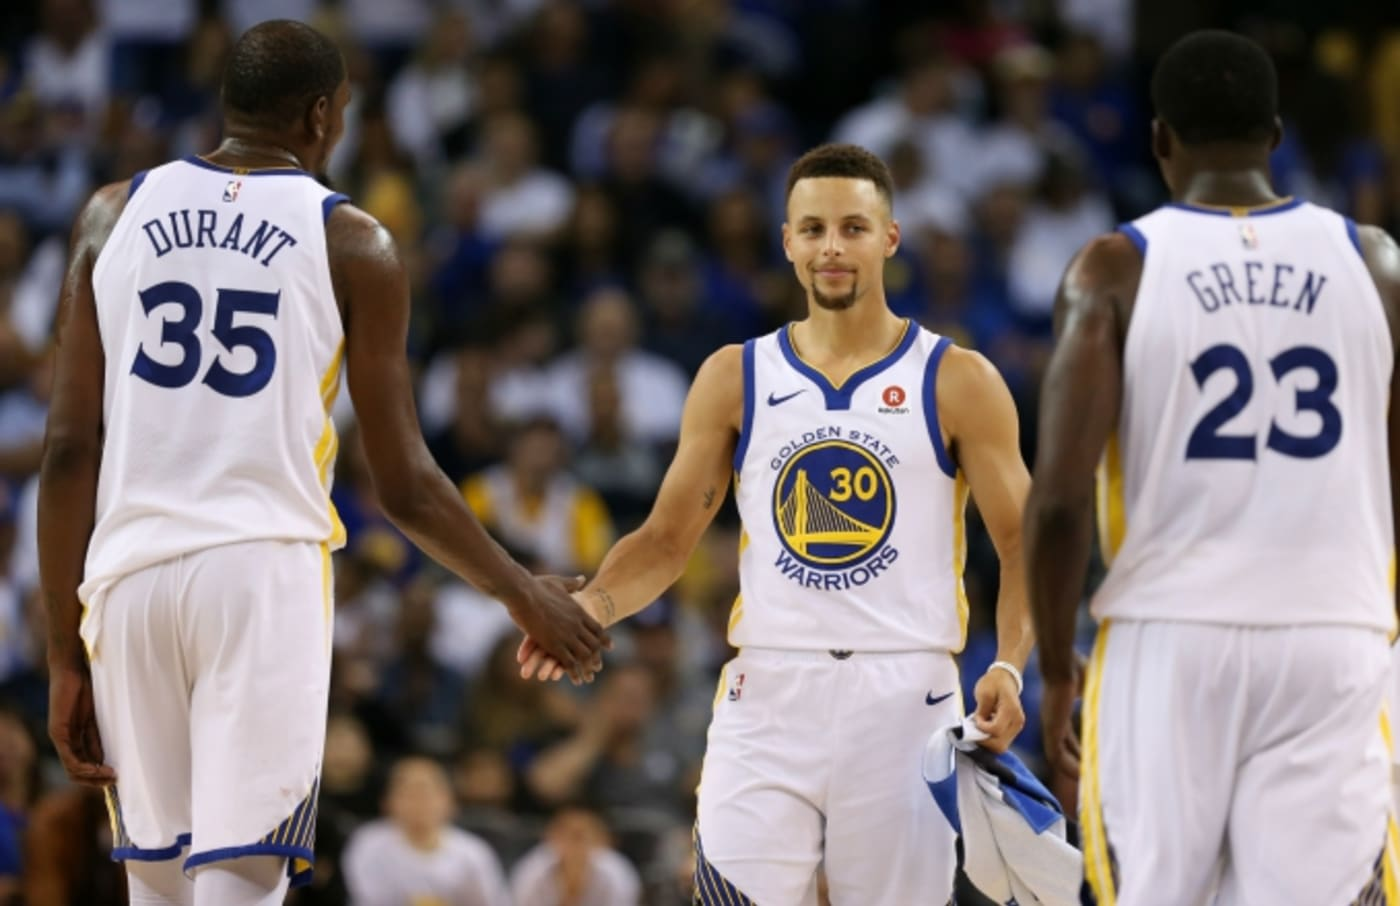 Warriors players during their first game of the season against the Rockets.